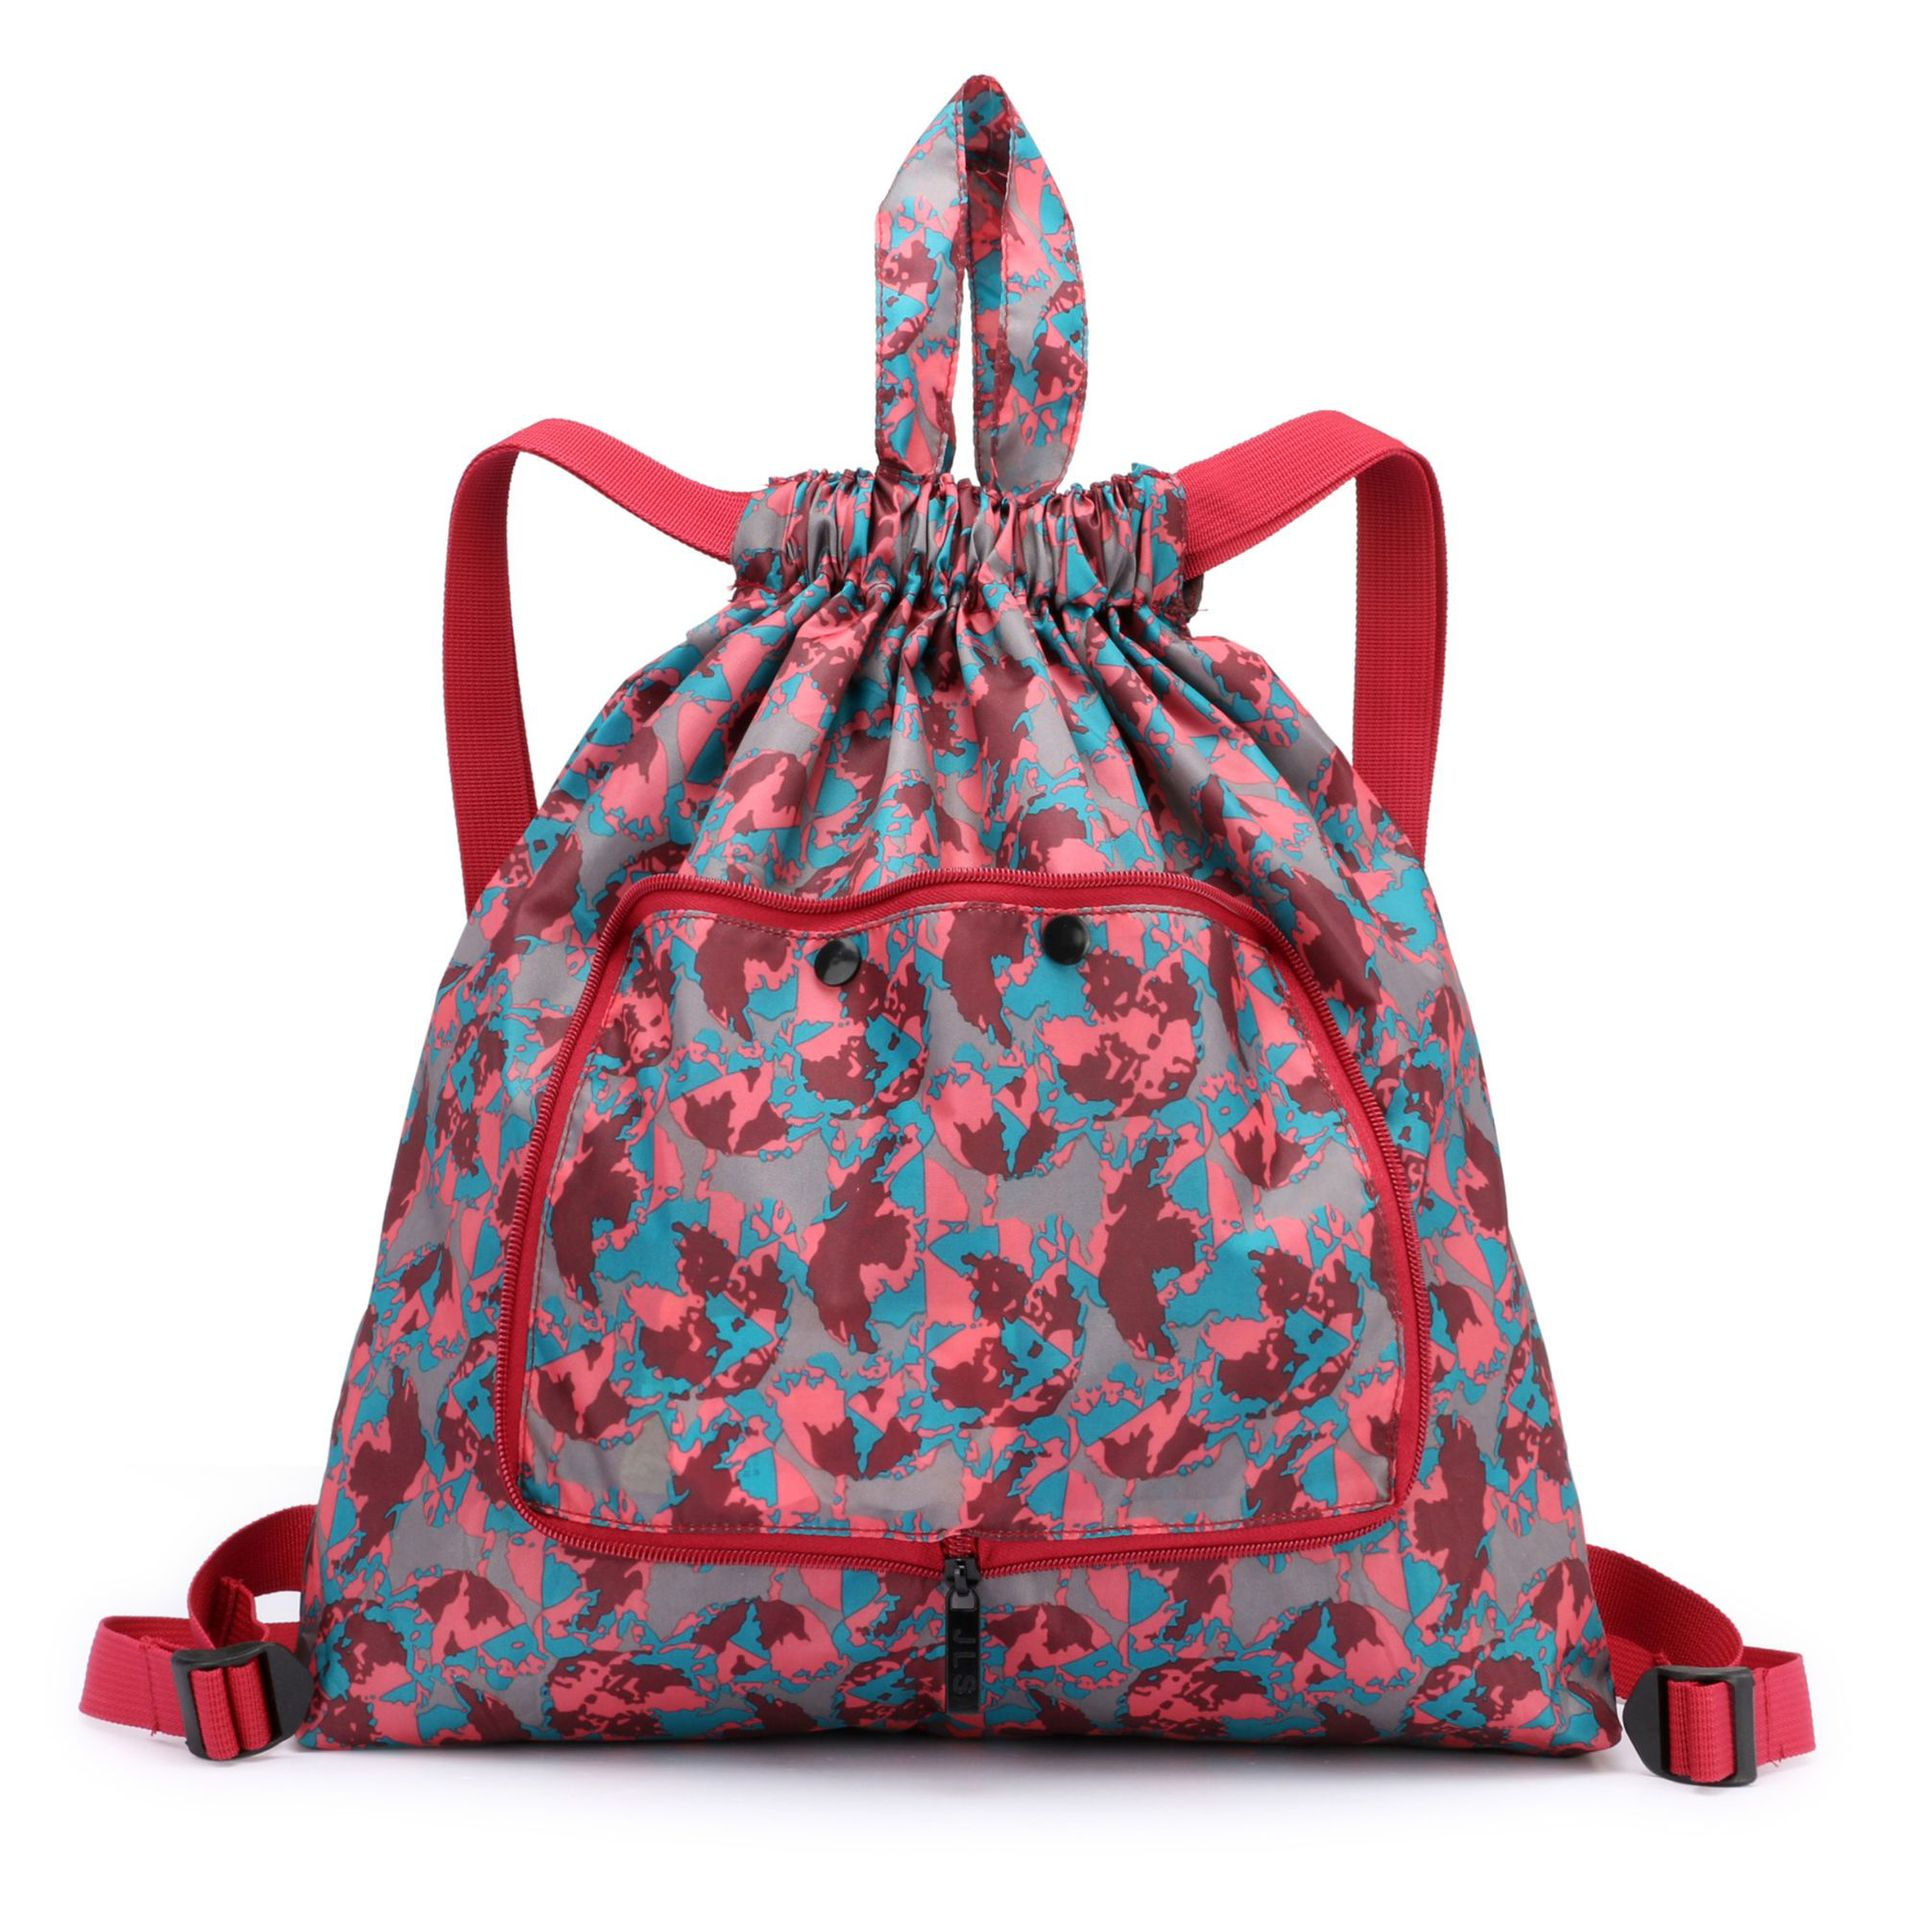 Women's Lightweight Backpack Waterproof And Foldable Storage Bag Sports And Fitness Drawstring Printed Backpack